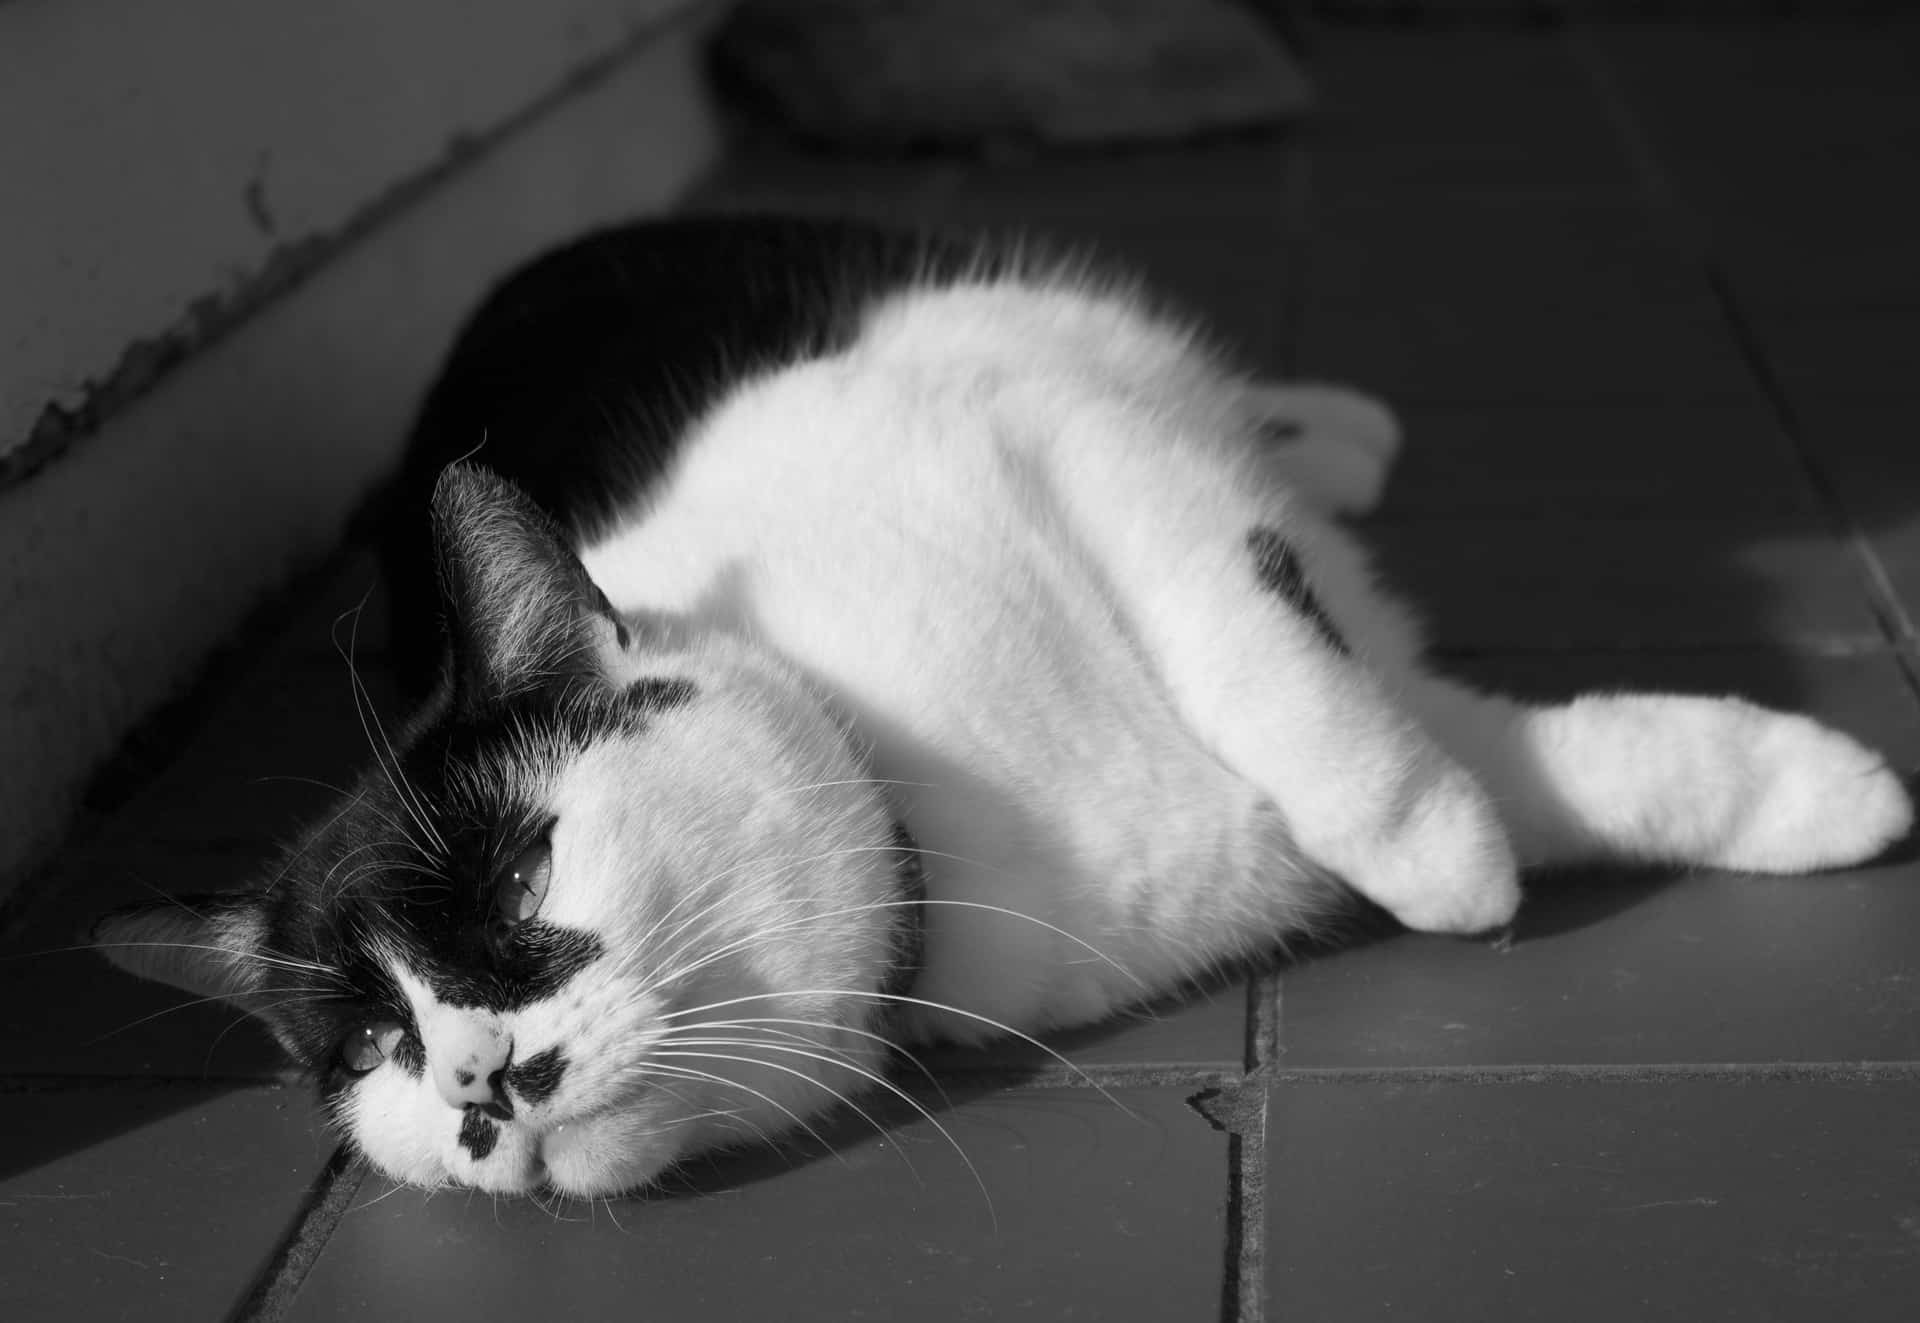 Black and White Portrait of a tuxedo cat from ground level